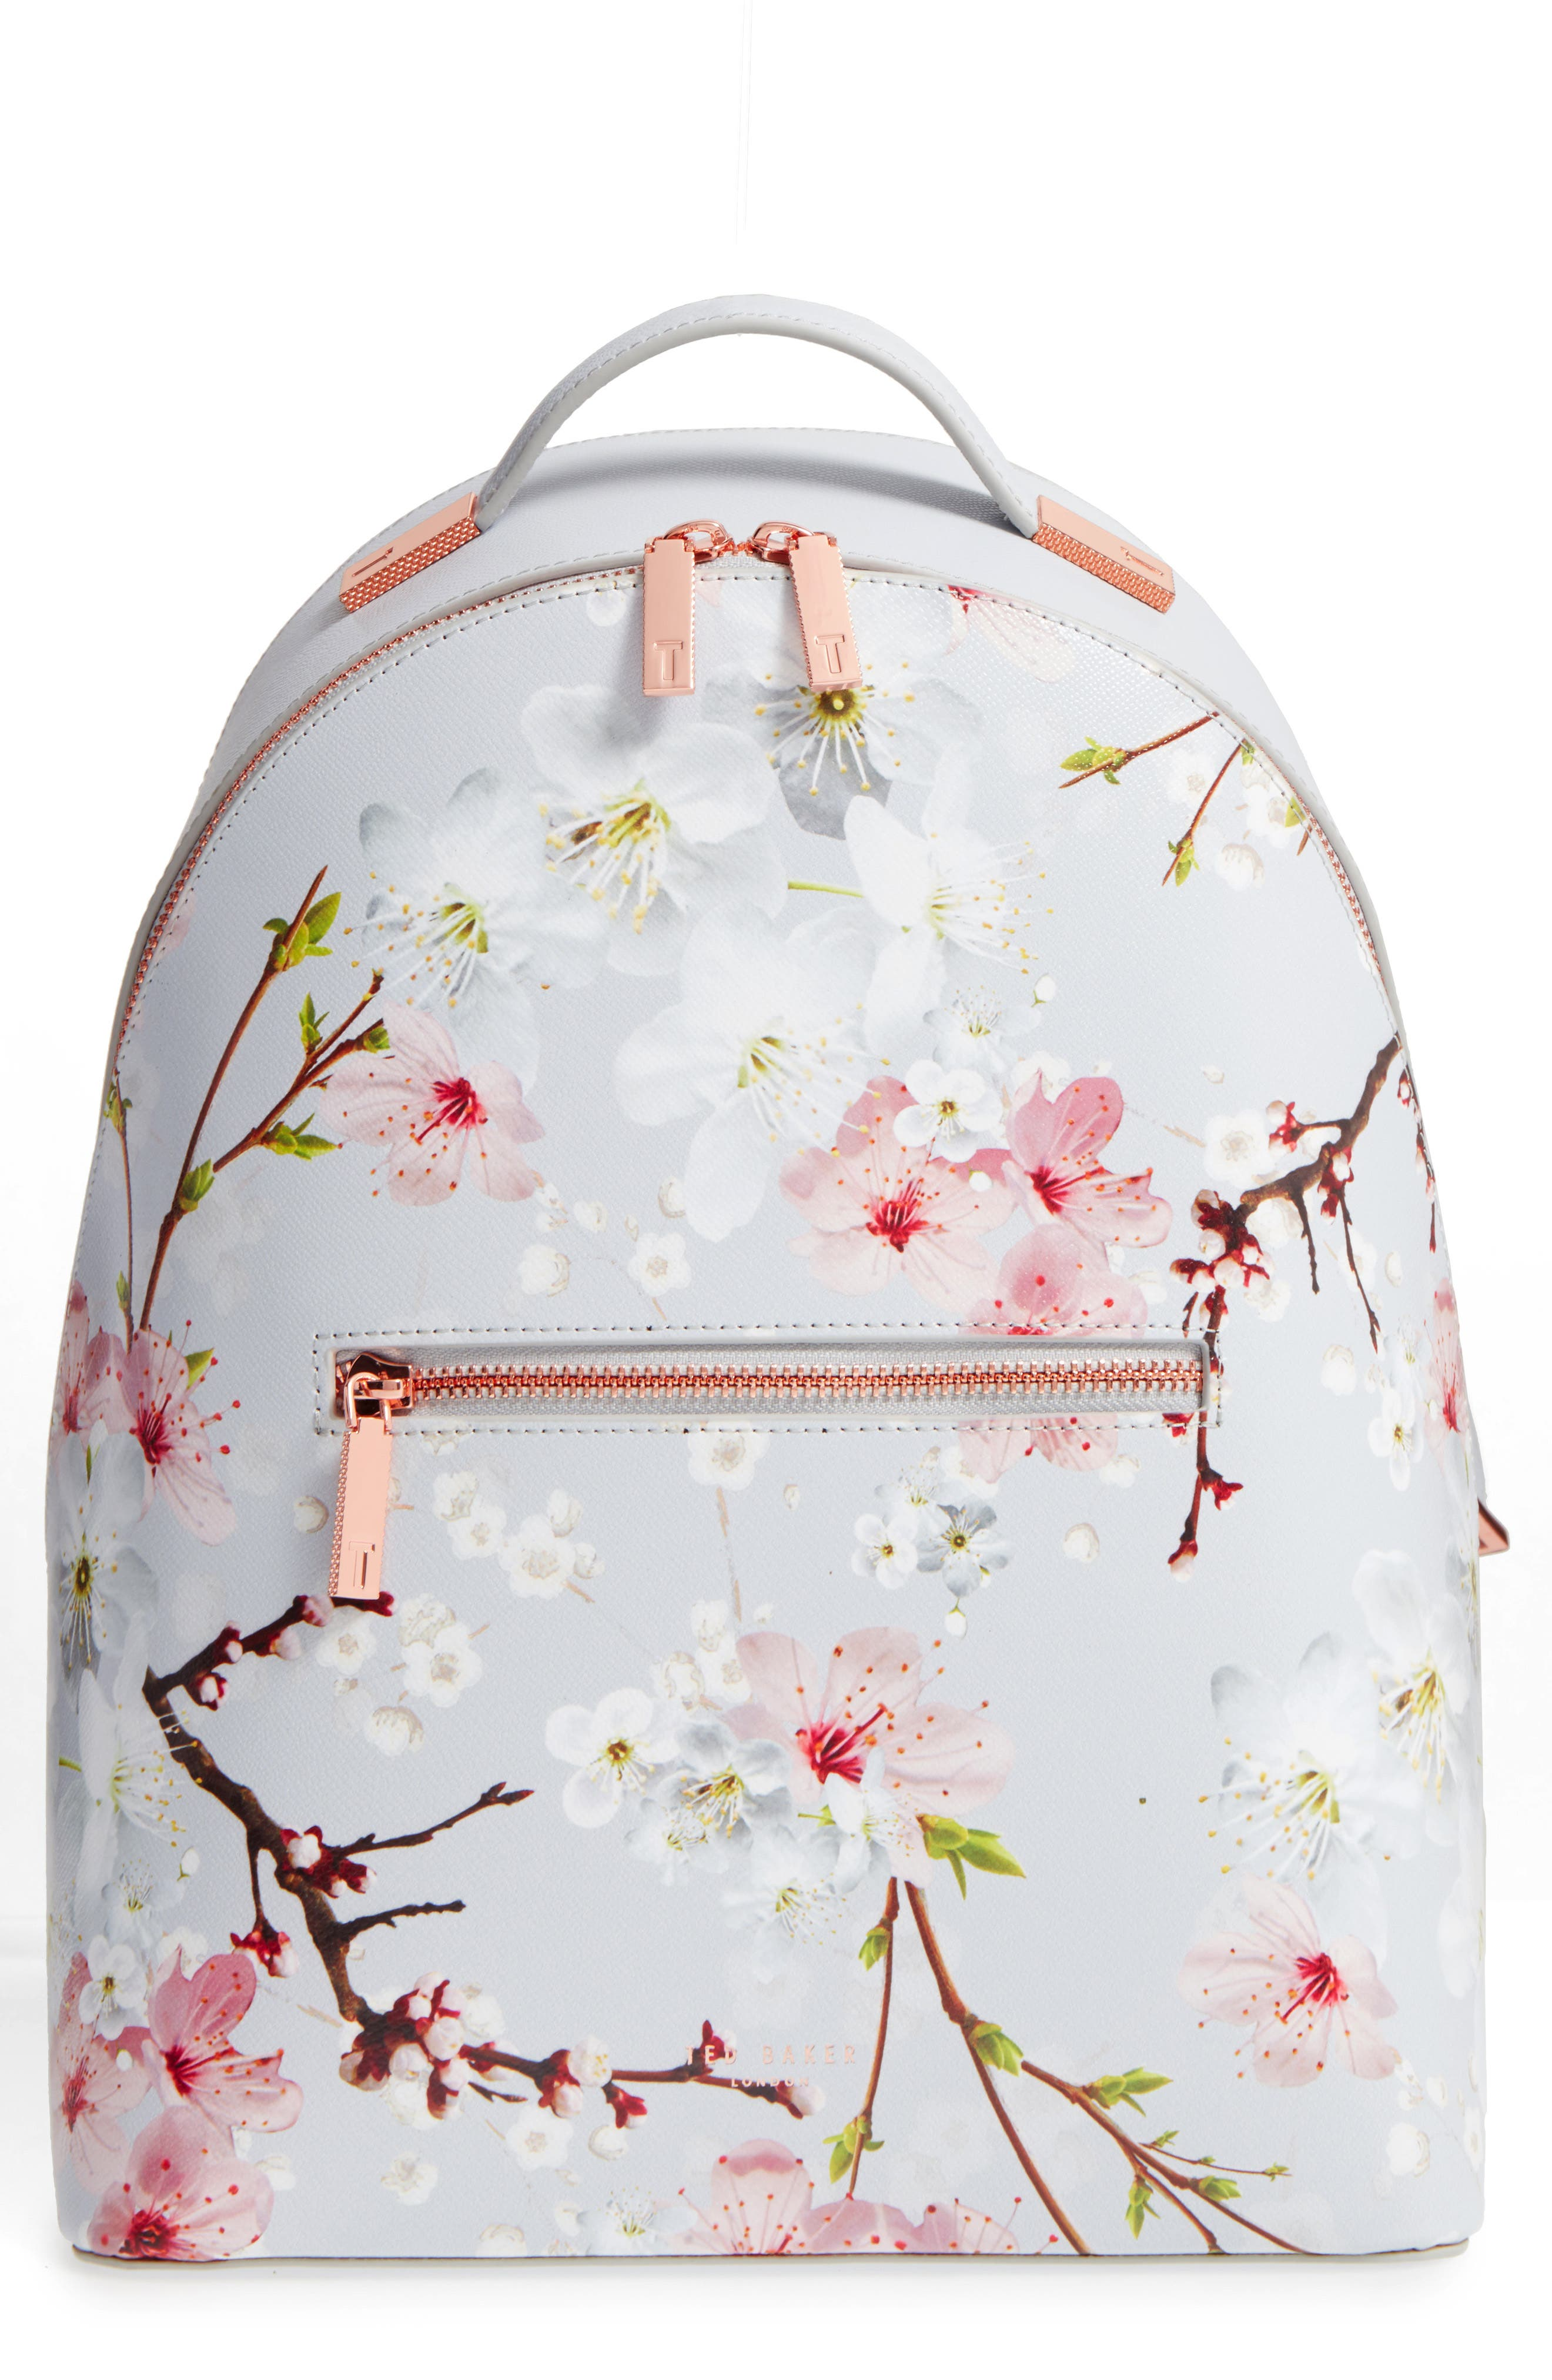 Flower Print Leather Backpack,                         Main,                         color, 020